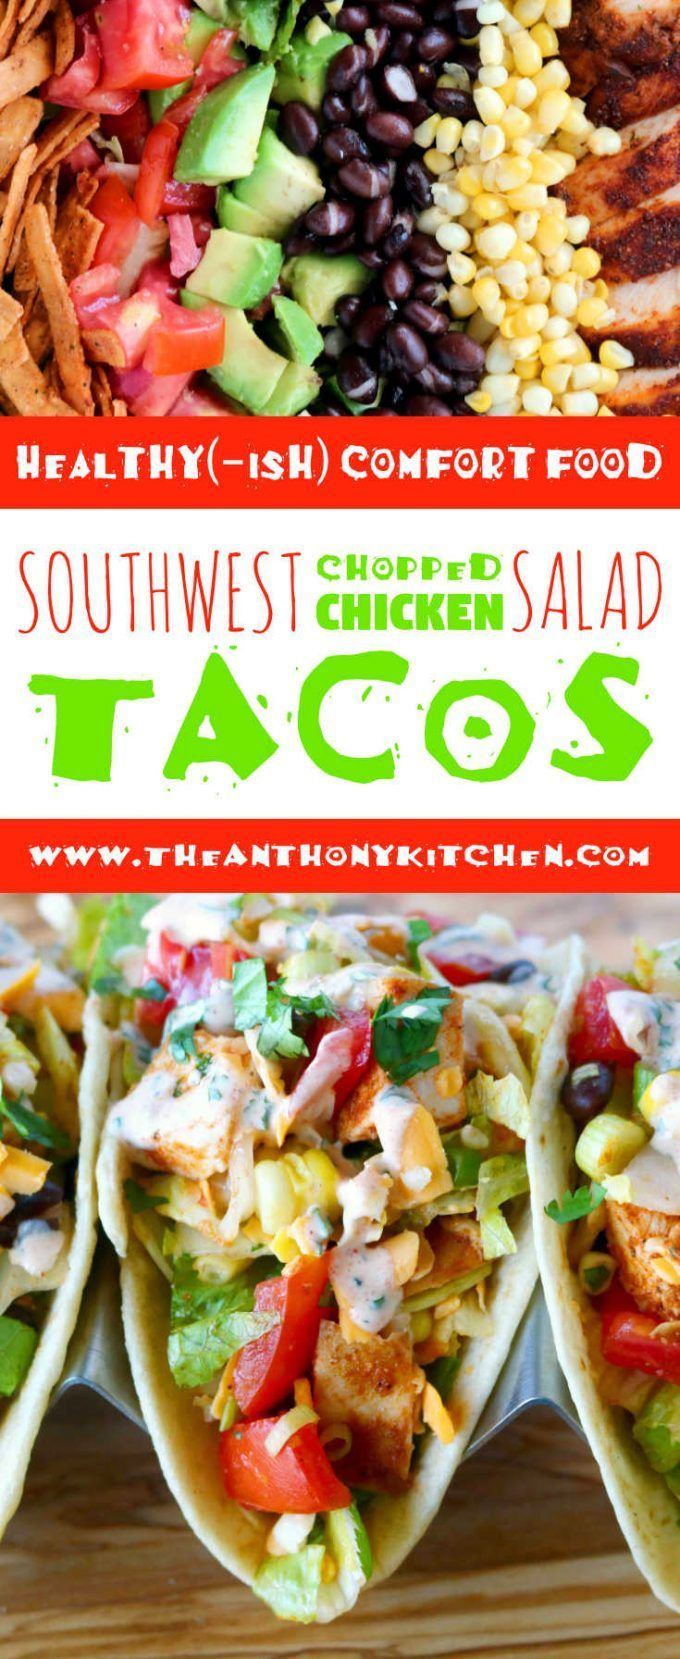 Healthy Taco Recipe | Southwest Chopped Chicken Salad Tacos | A healthy taco recipe featuring Southwest chopped chicken, black beans, corn, crisp lettuce, and more. Plus, a creamy cilantro lime dressing to top it all off | #tacotuesday #healthy #tacorecip